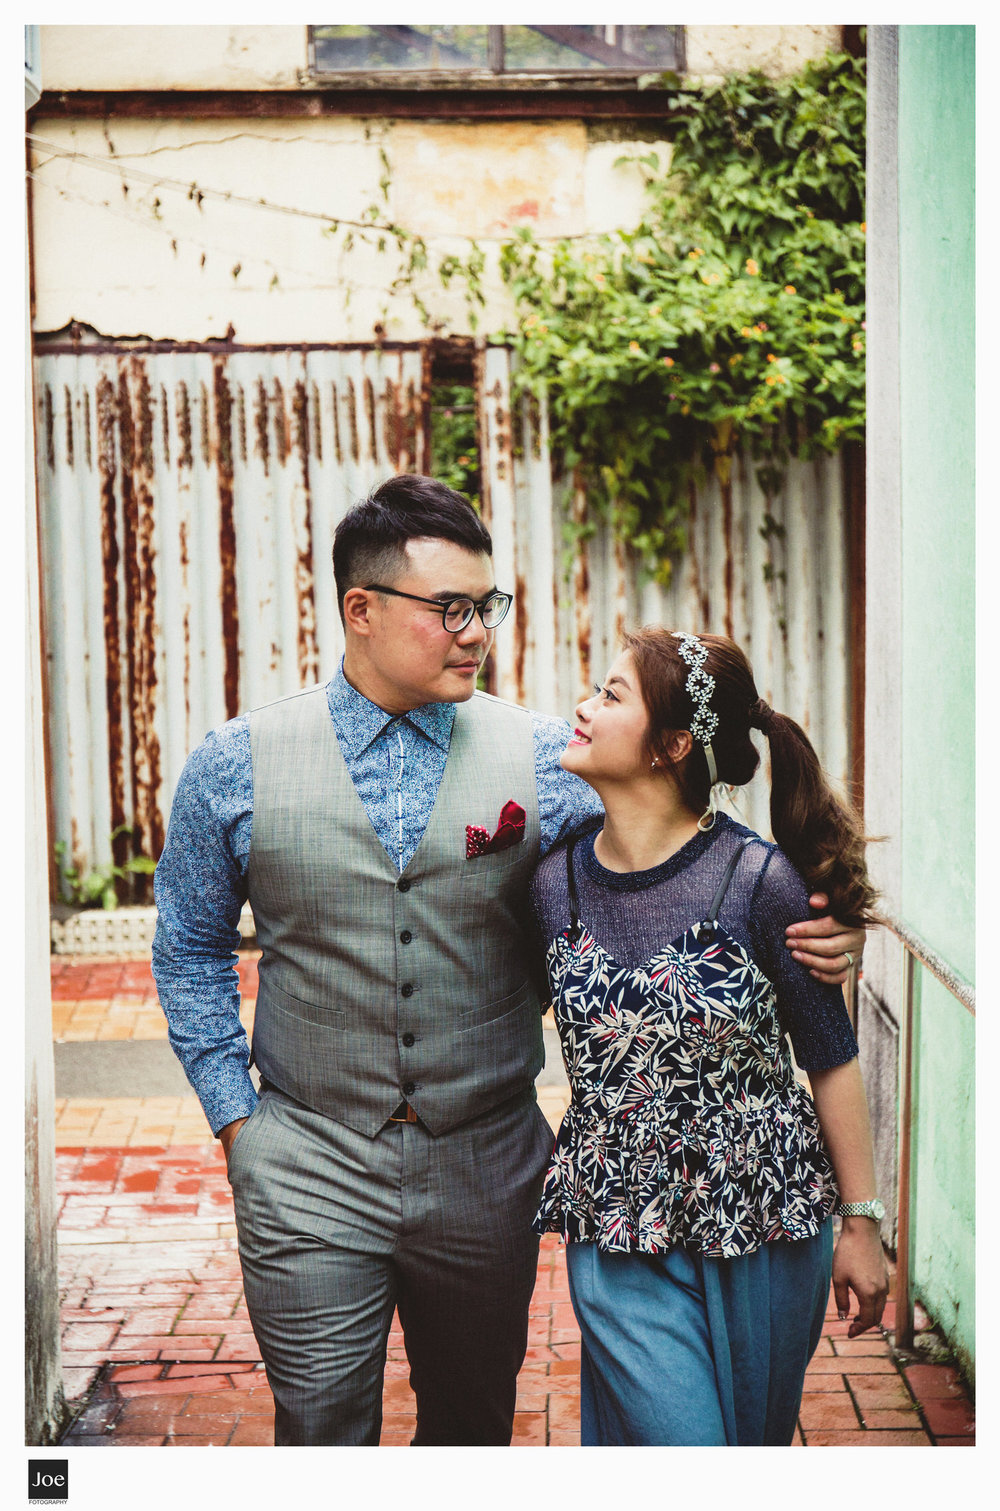 061-coloane-village-macau-pre-wedding-jie-min-joe-fotography.jpg